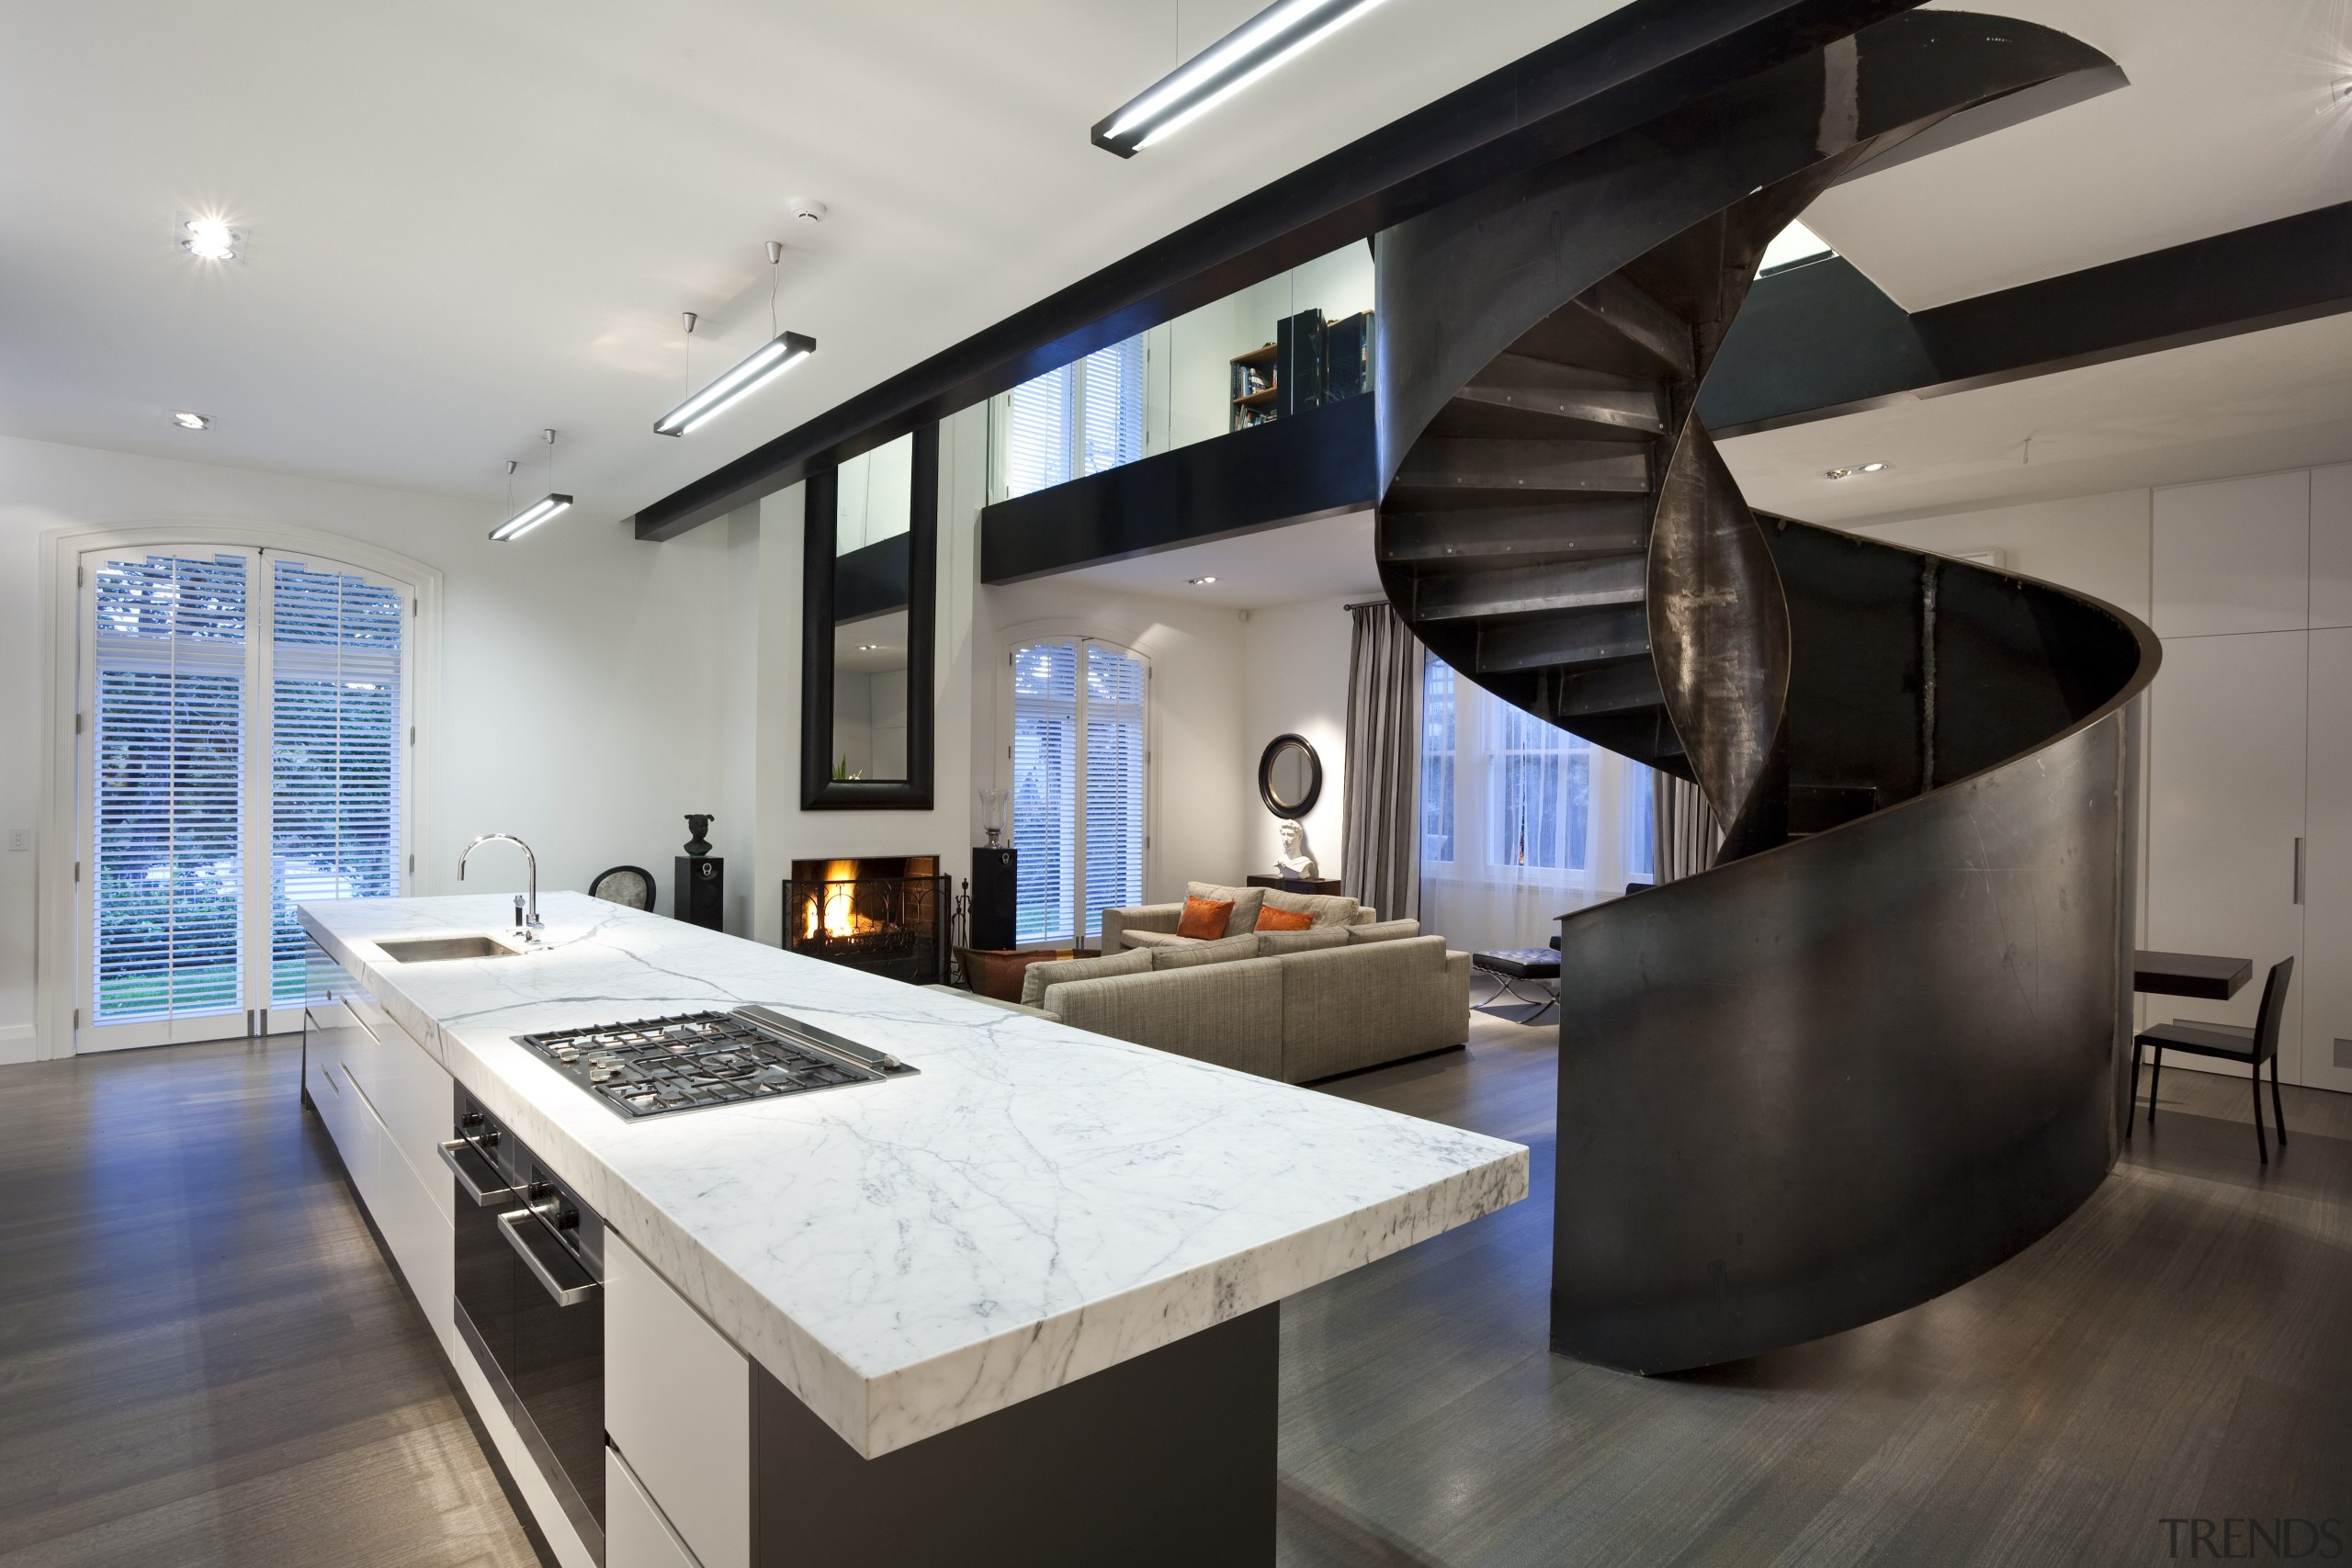 View of renovated home which features kitchen with countertop, interior design, kitchen, gray, black